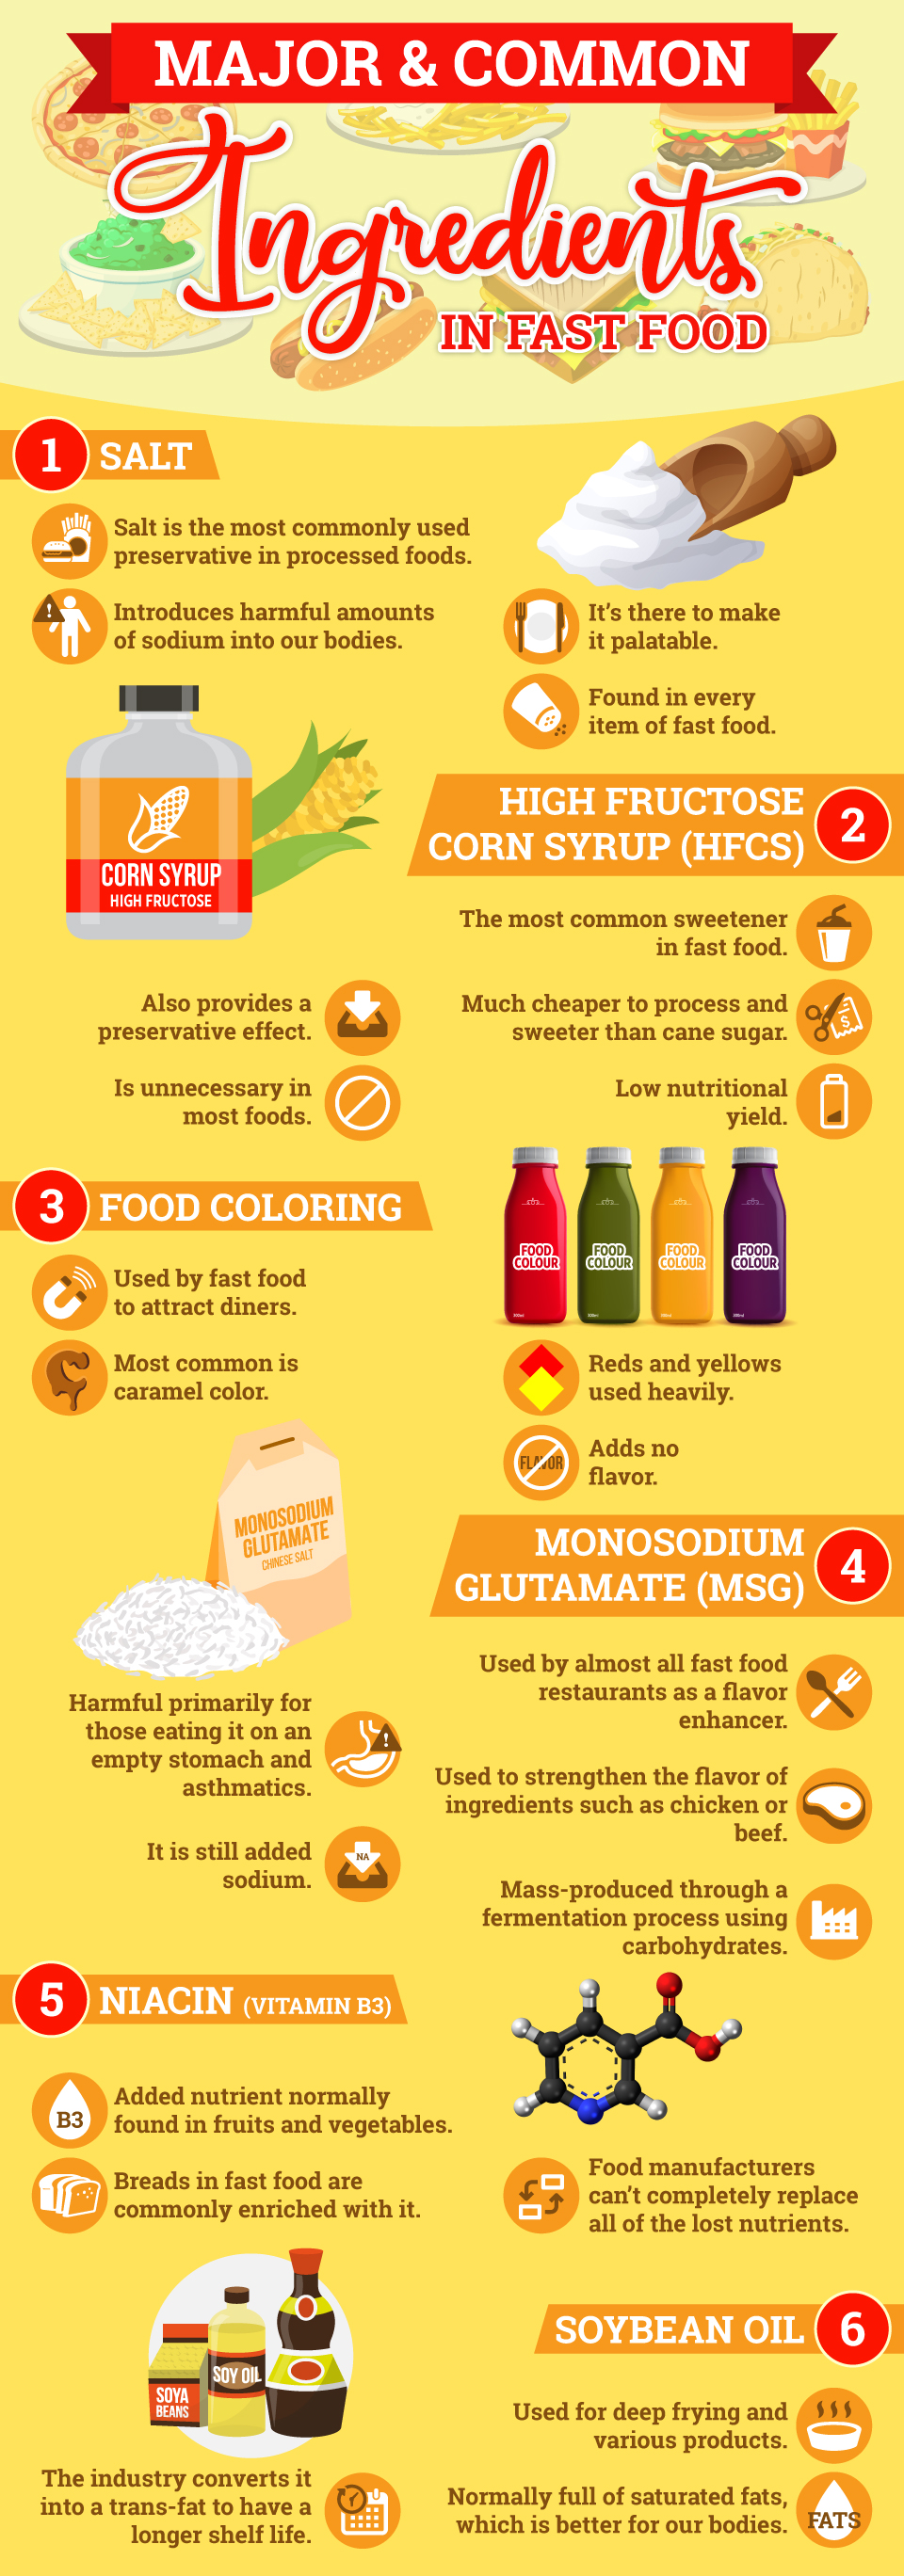 Major and Common Ingredients in Fast Food